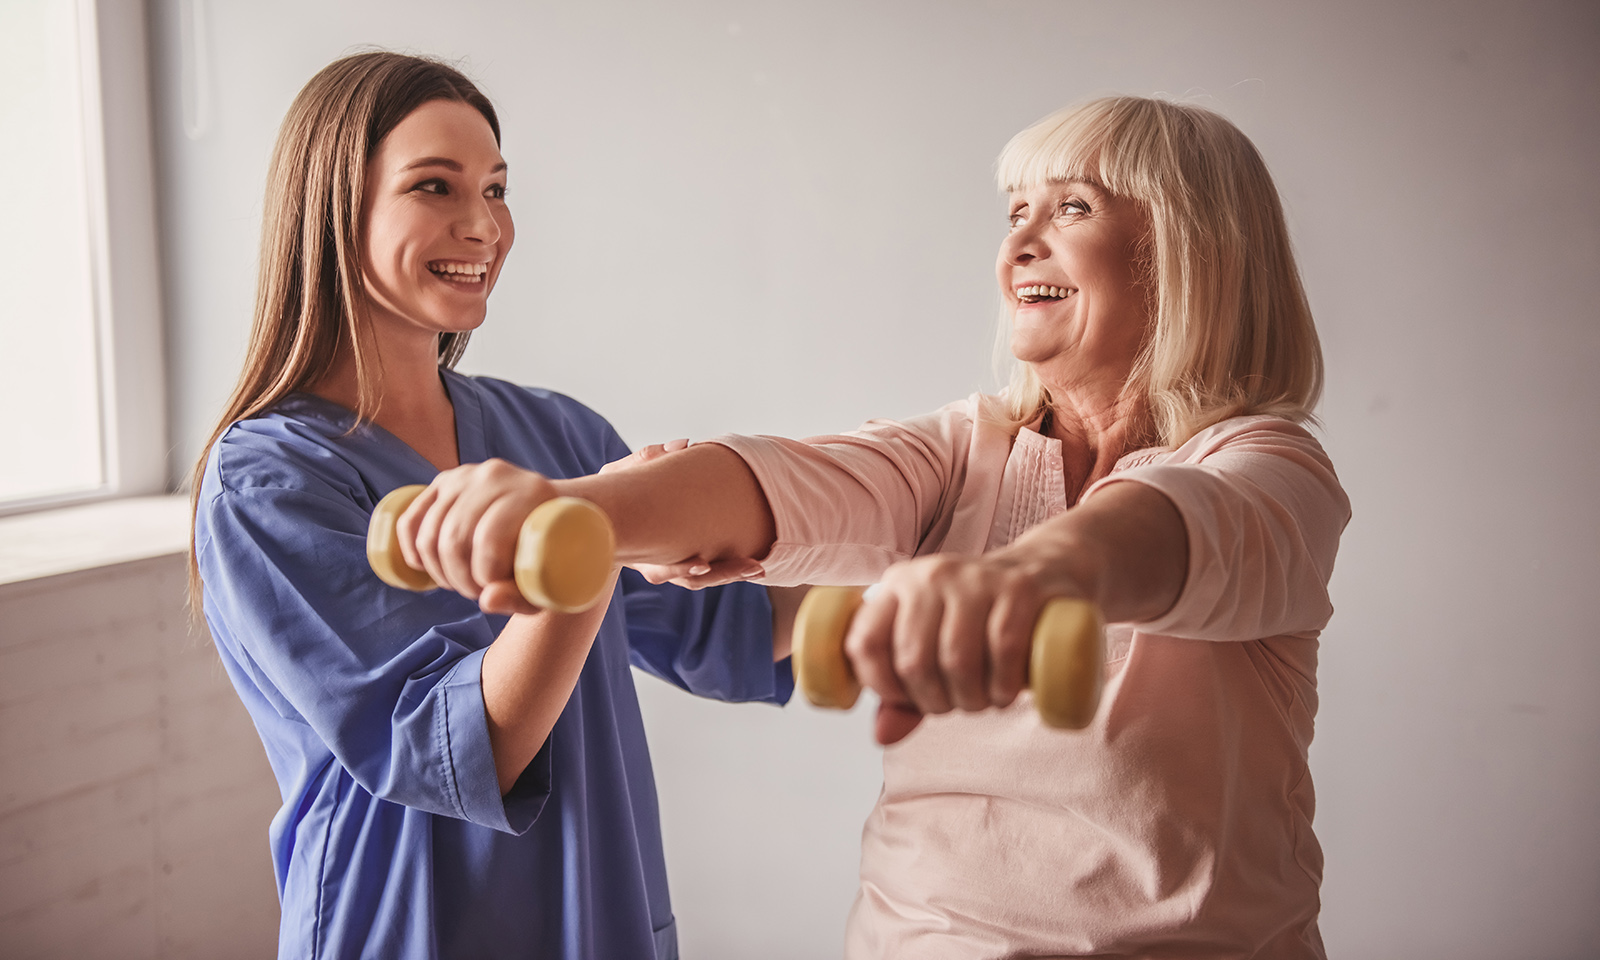 how-a-workout-partner-can-make-youaccountable-for-your-workout-routine-woman-helping-older-woman-with-weights